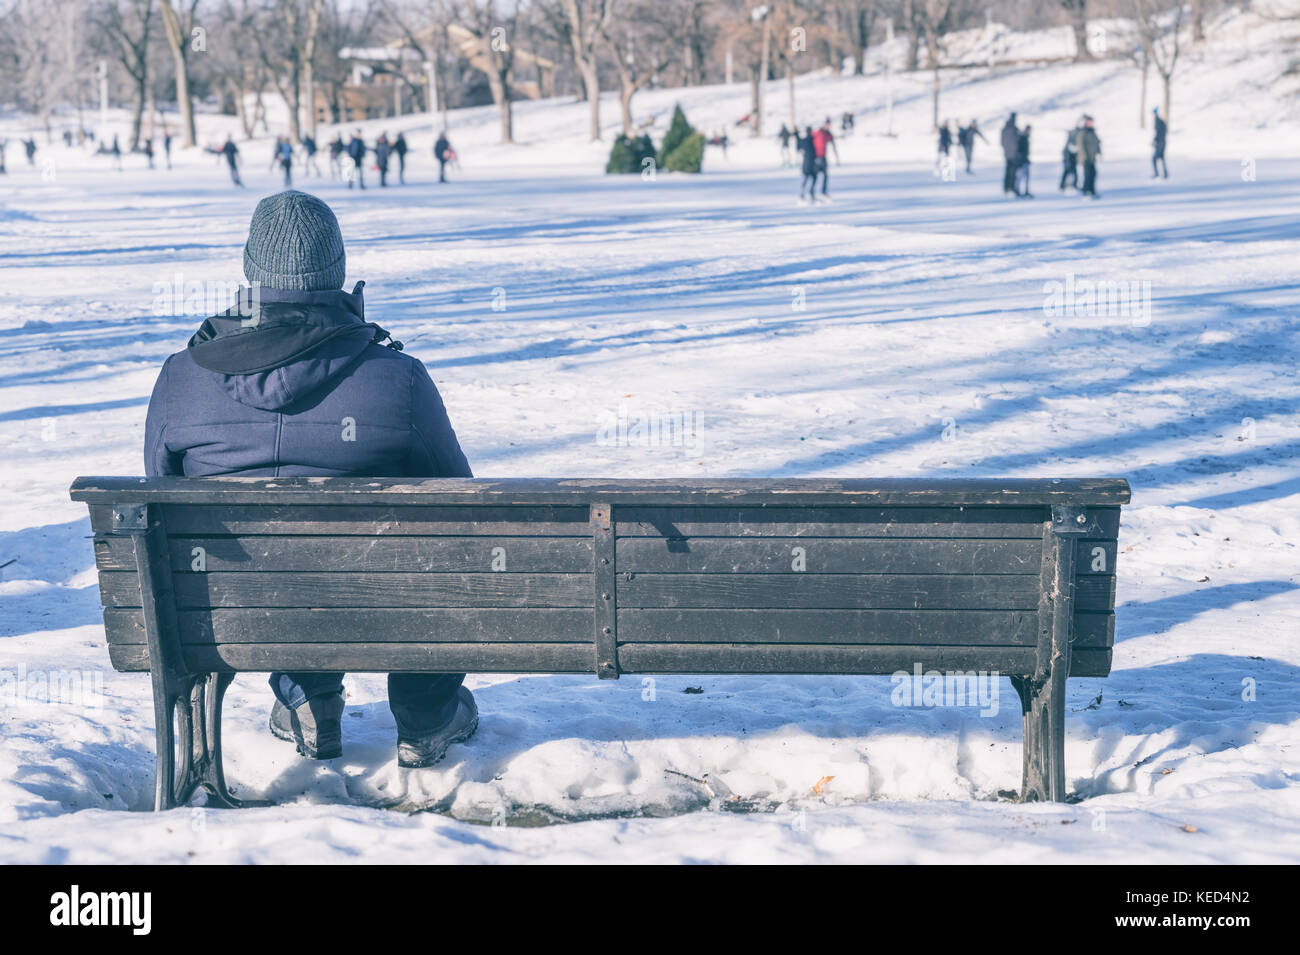 Man sitting on bench looking at people ice skating - Stock Image